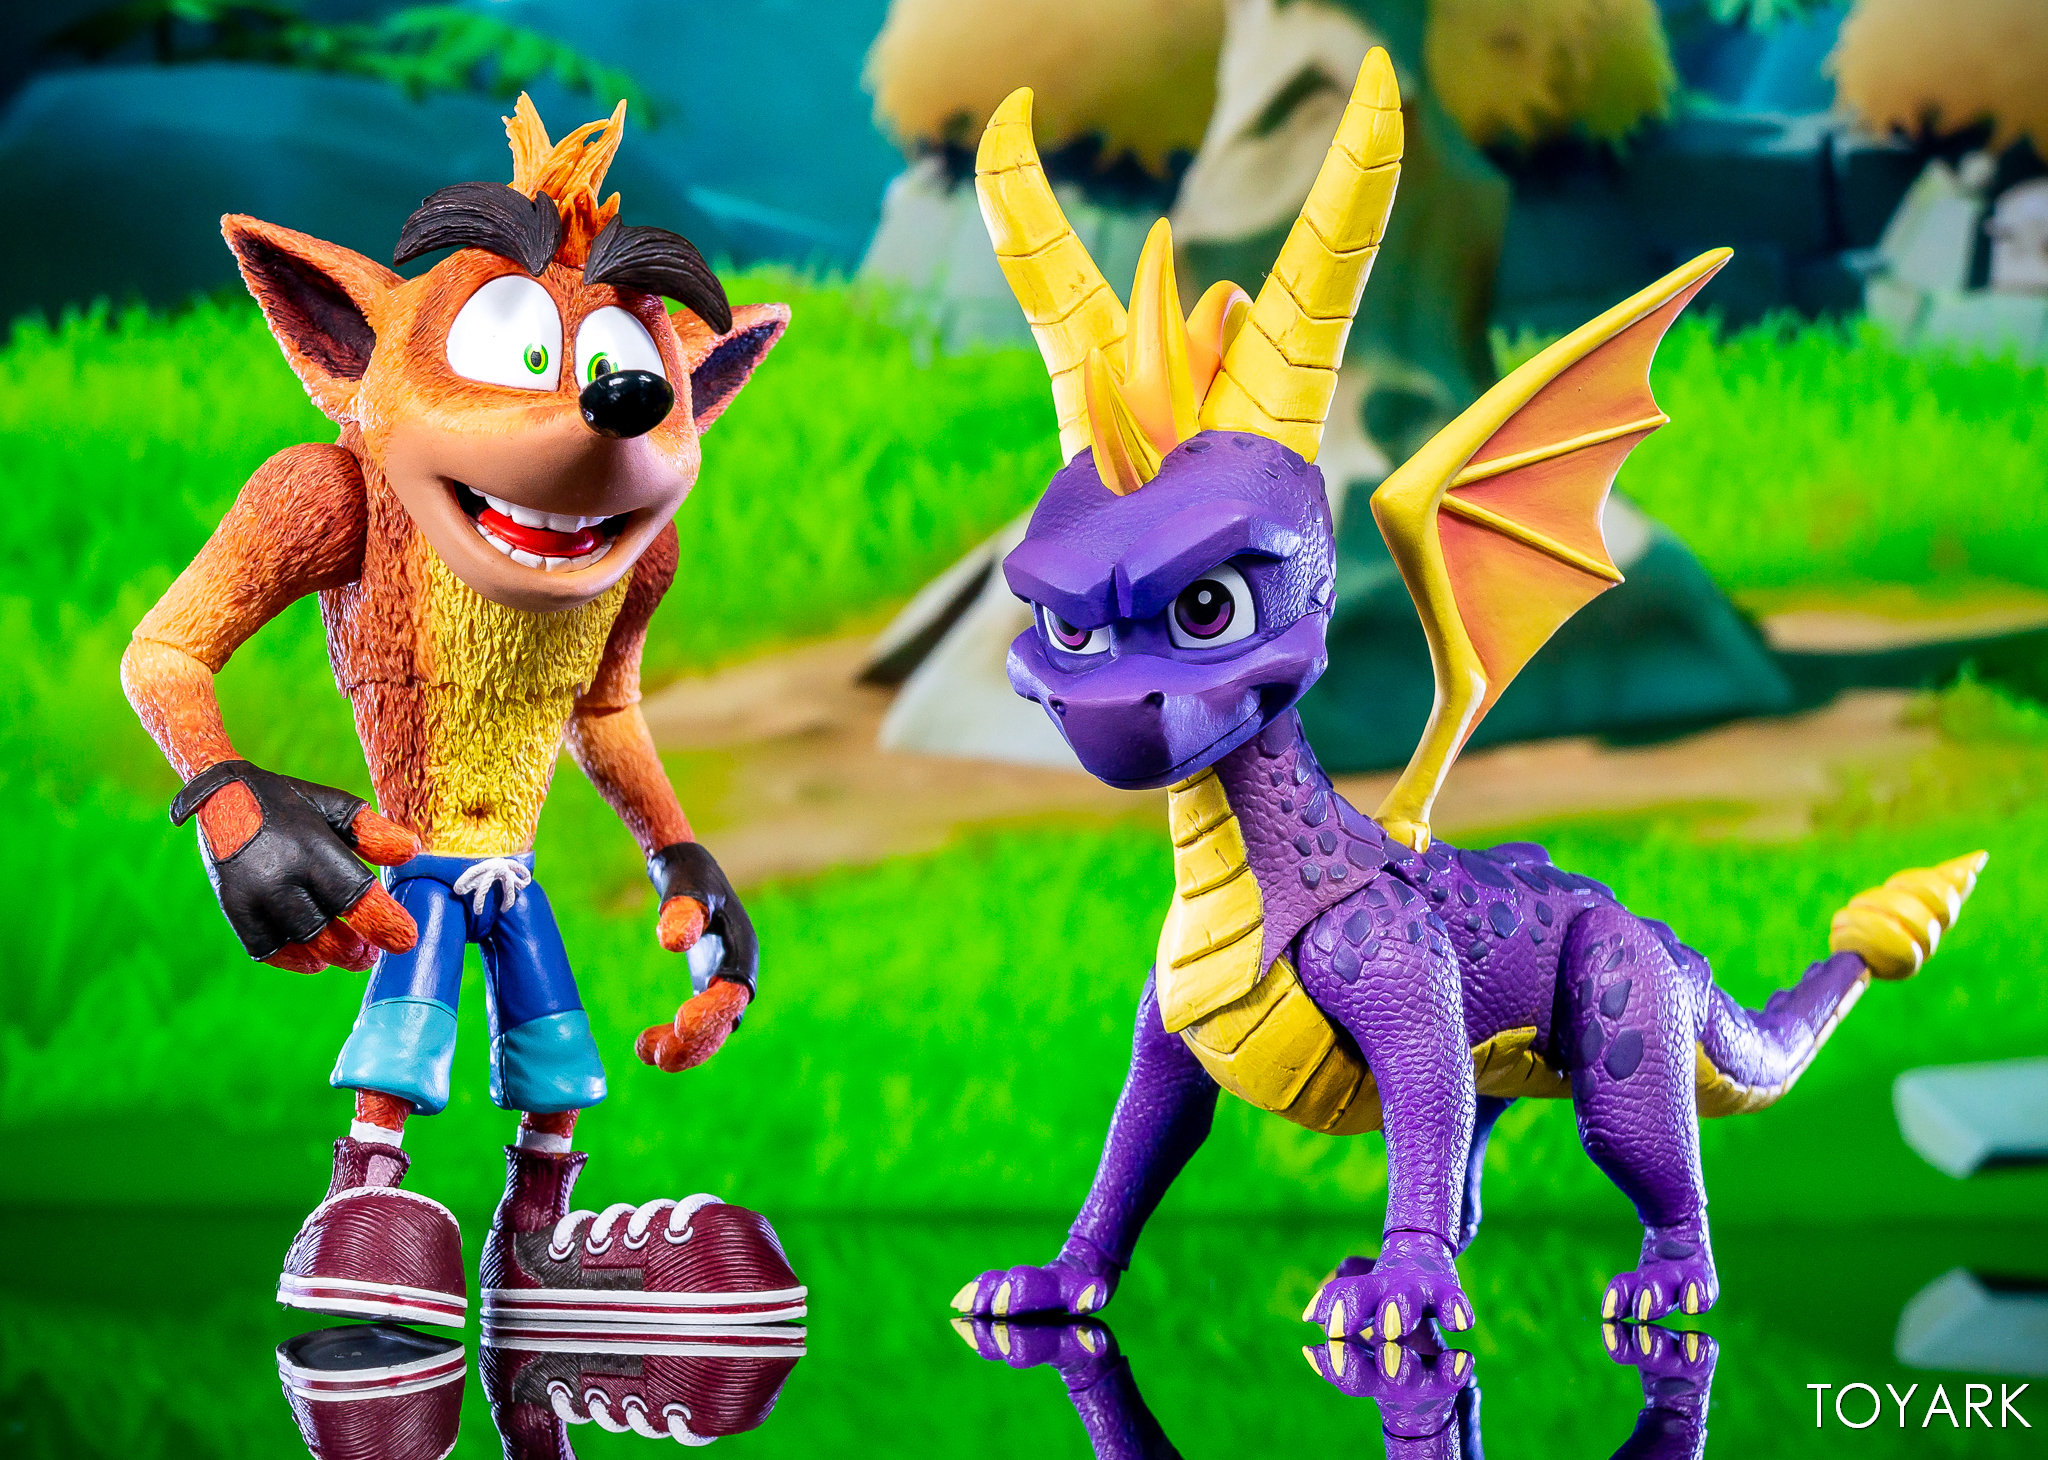 https://news.toyark.com/wp-content/uploads/sites/4/2019/03/NECA-Spyro-The-Dragon-Figure-022.jpg